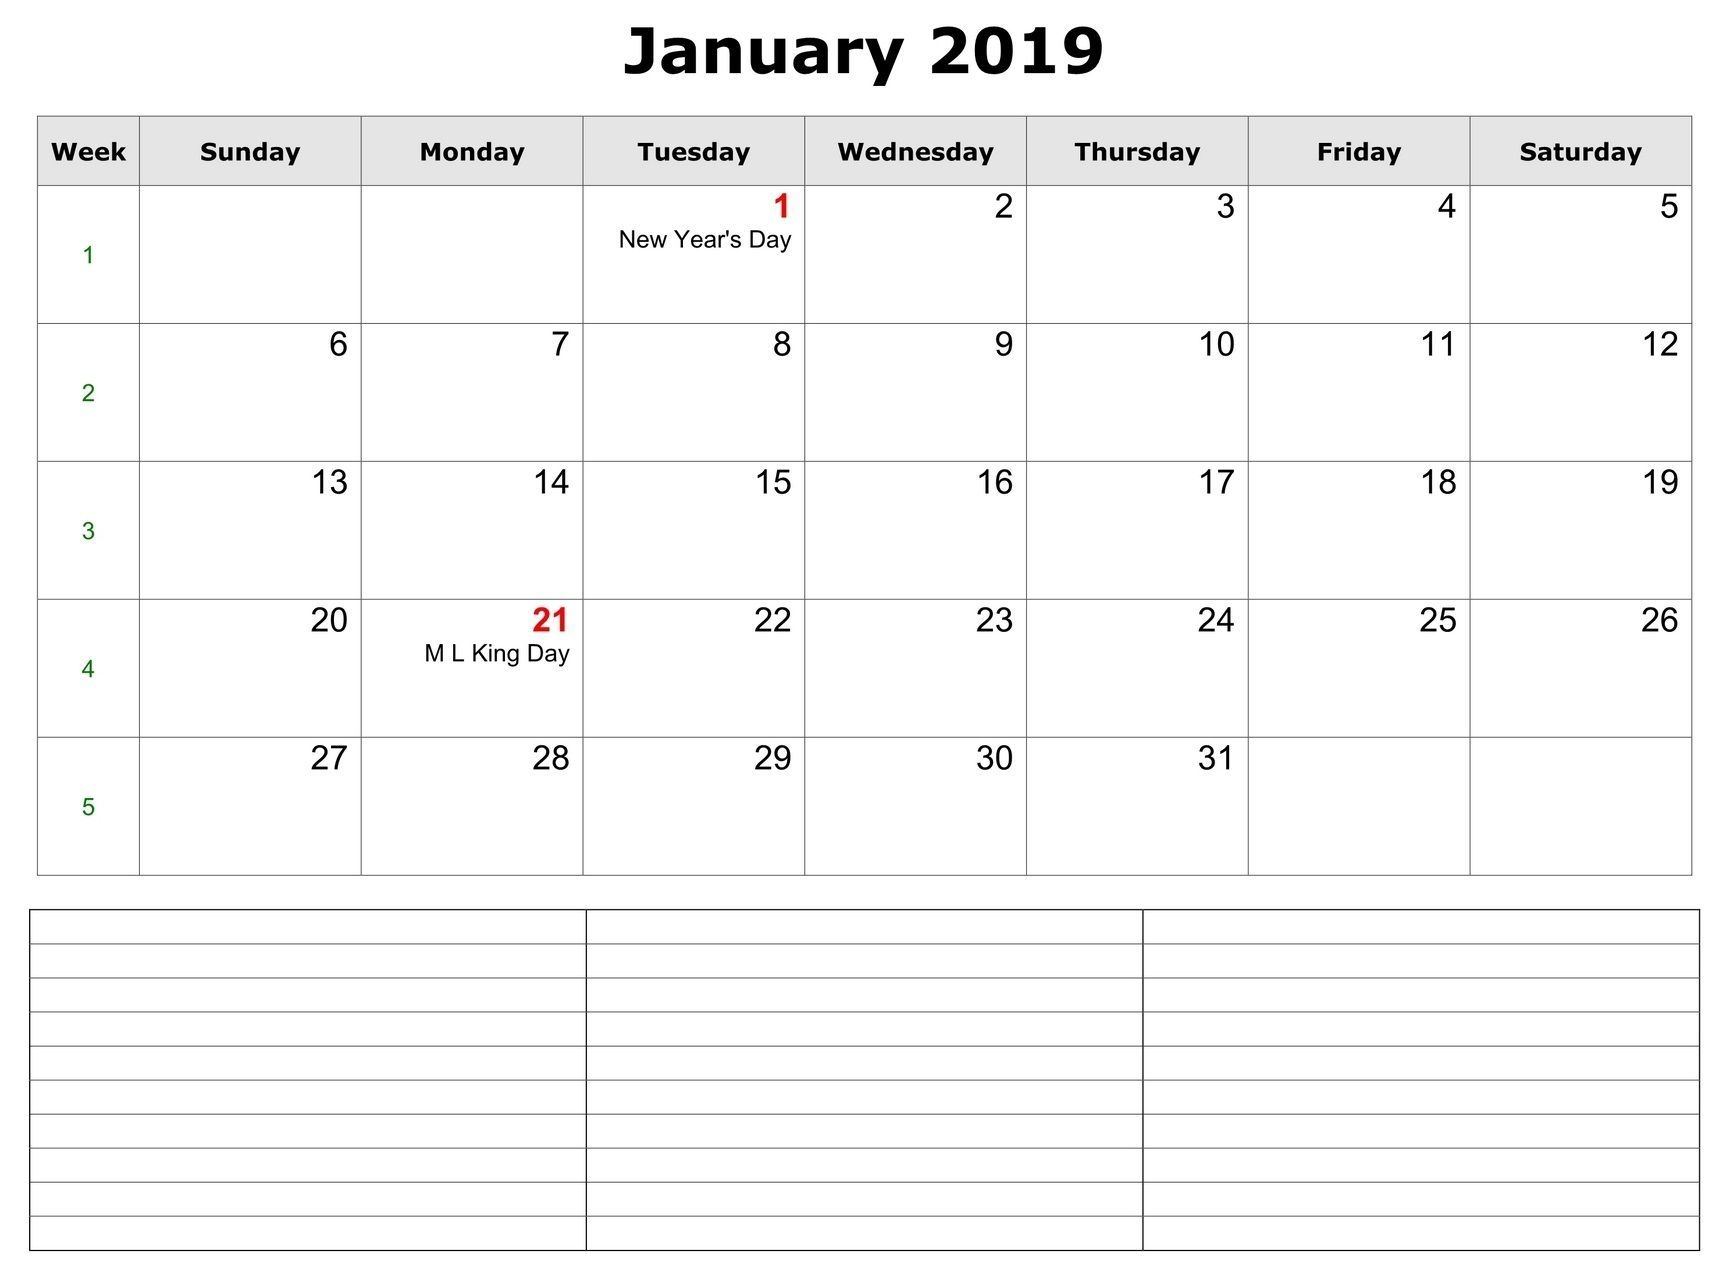 January 2019 Calendars Template With Notes Section